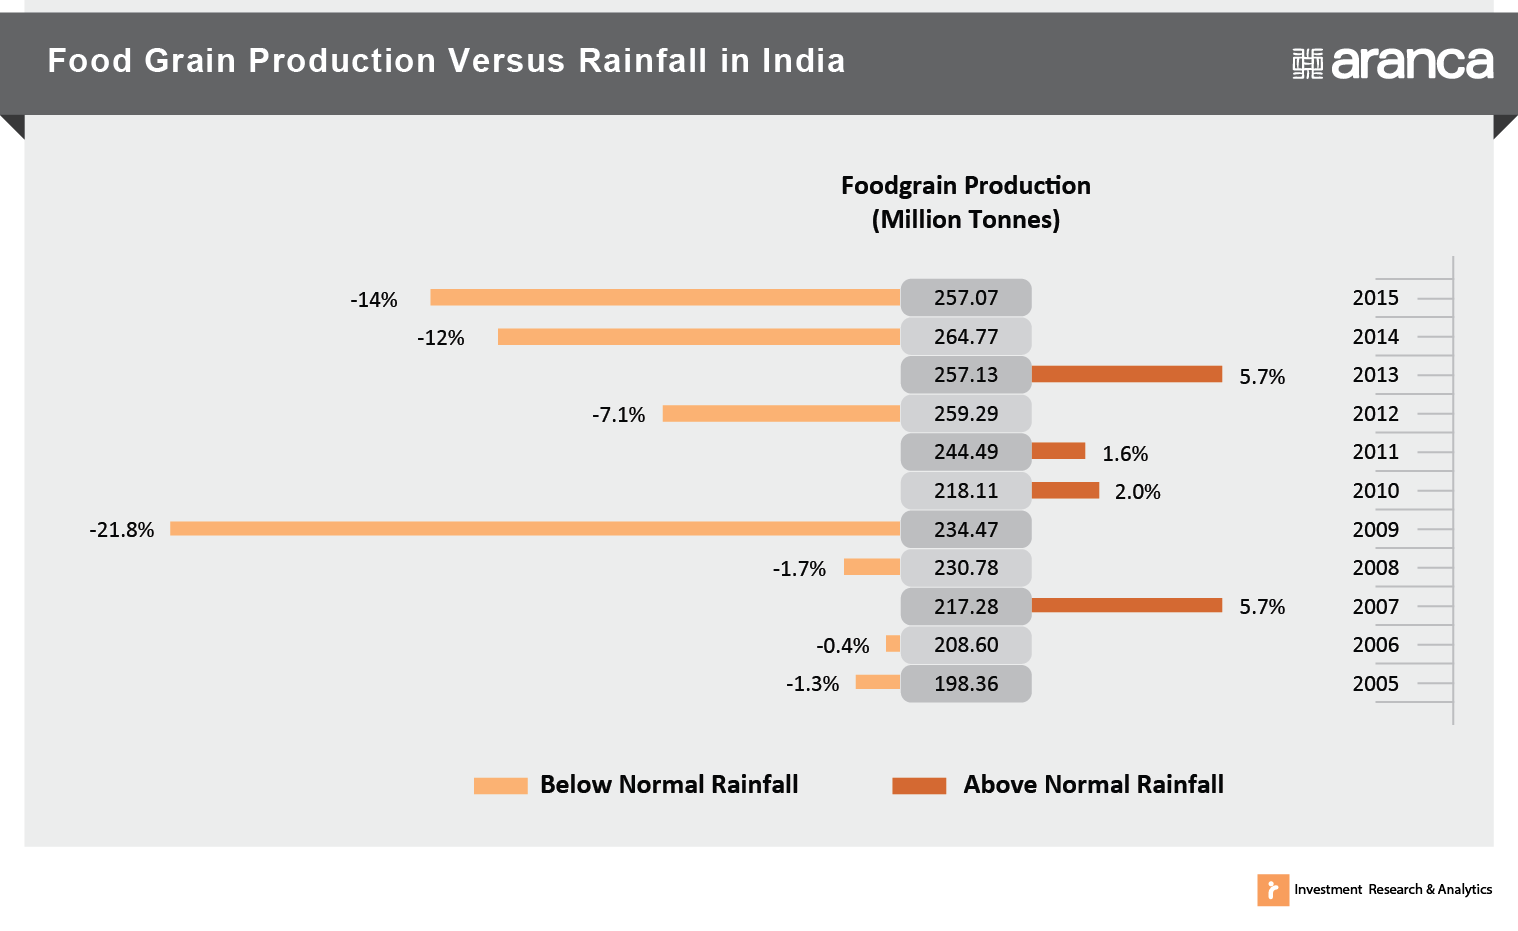 Food Grain Production versus Rainfall in India